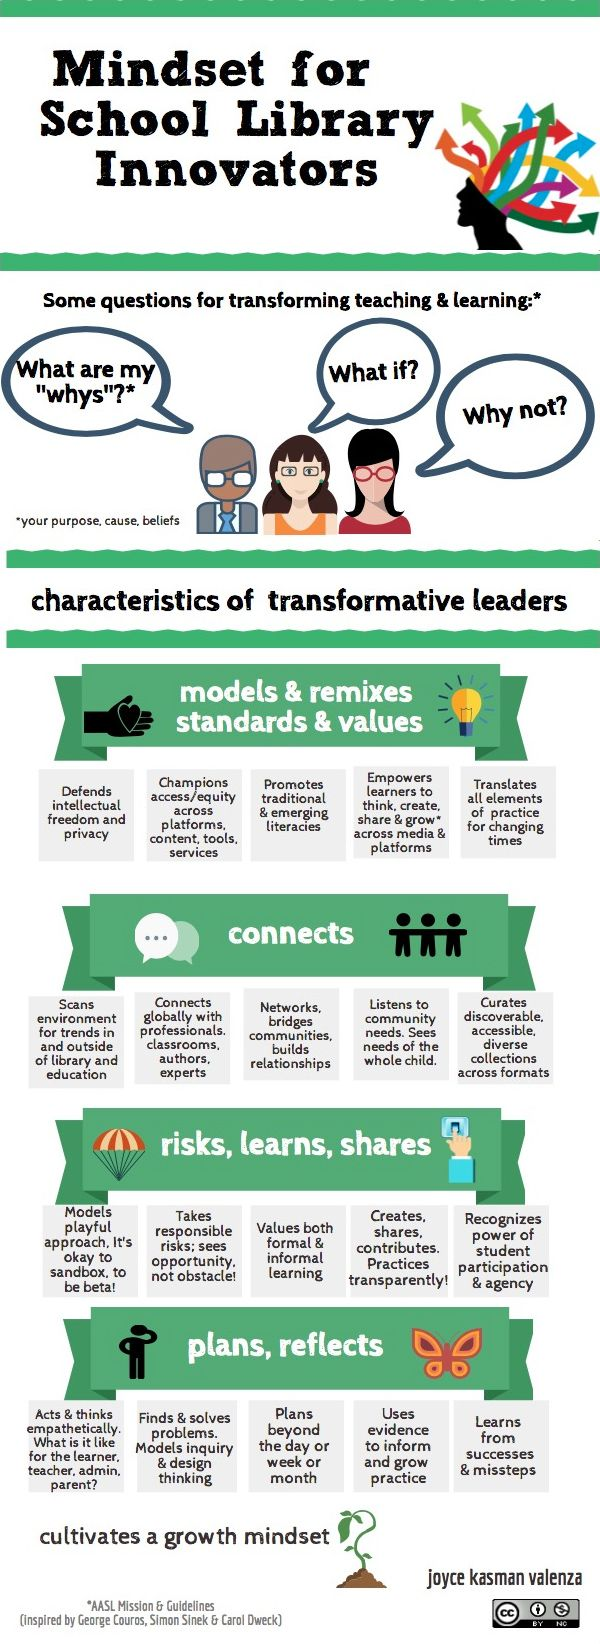 best ideas about school librarian school infographic mindset for school library innovators mackin tysl